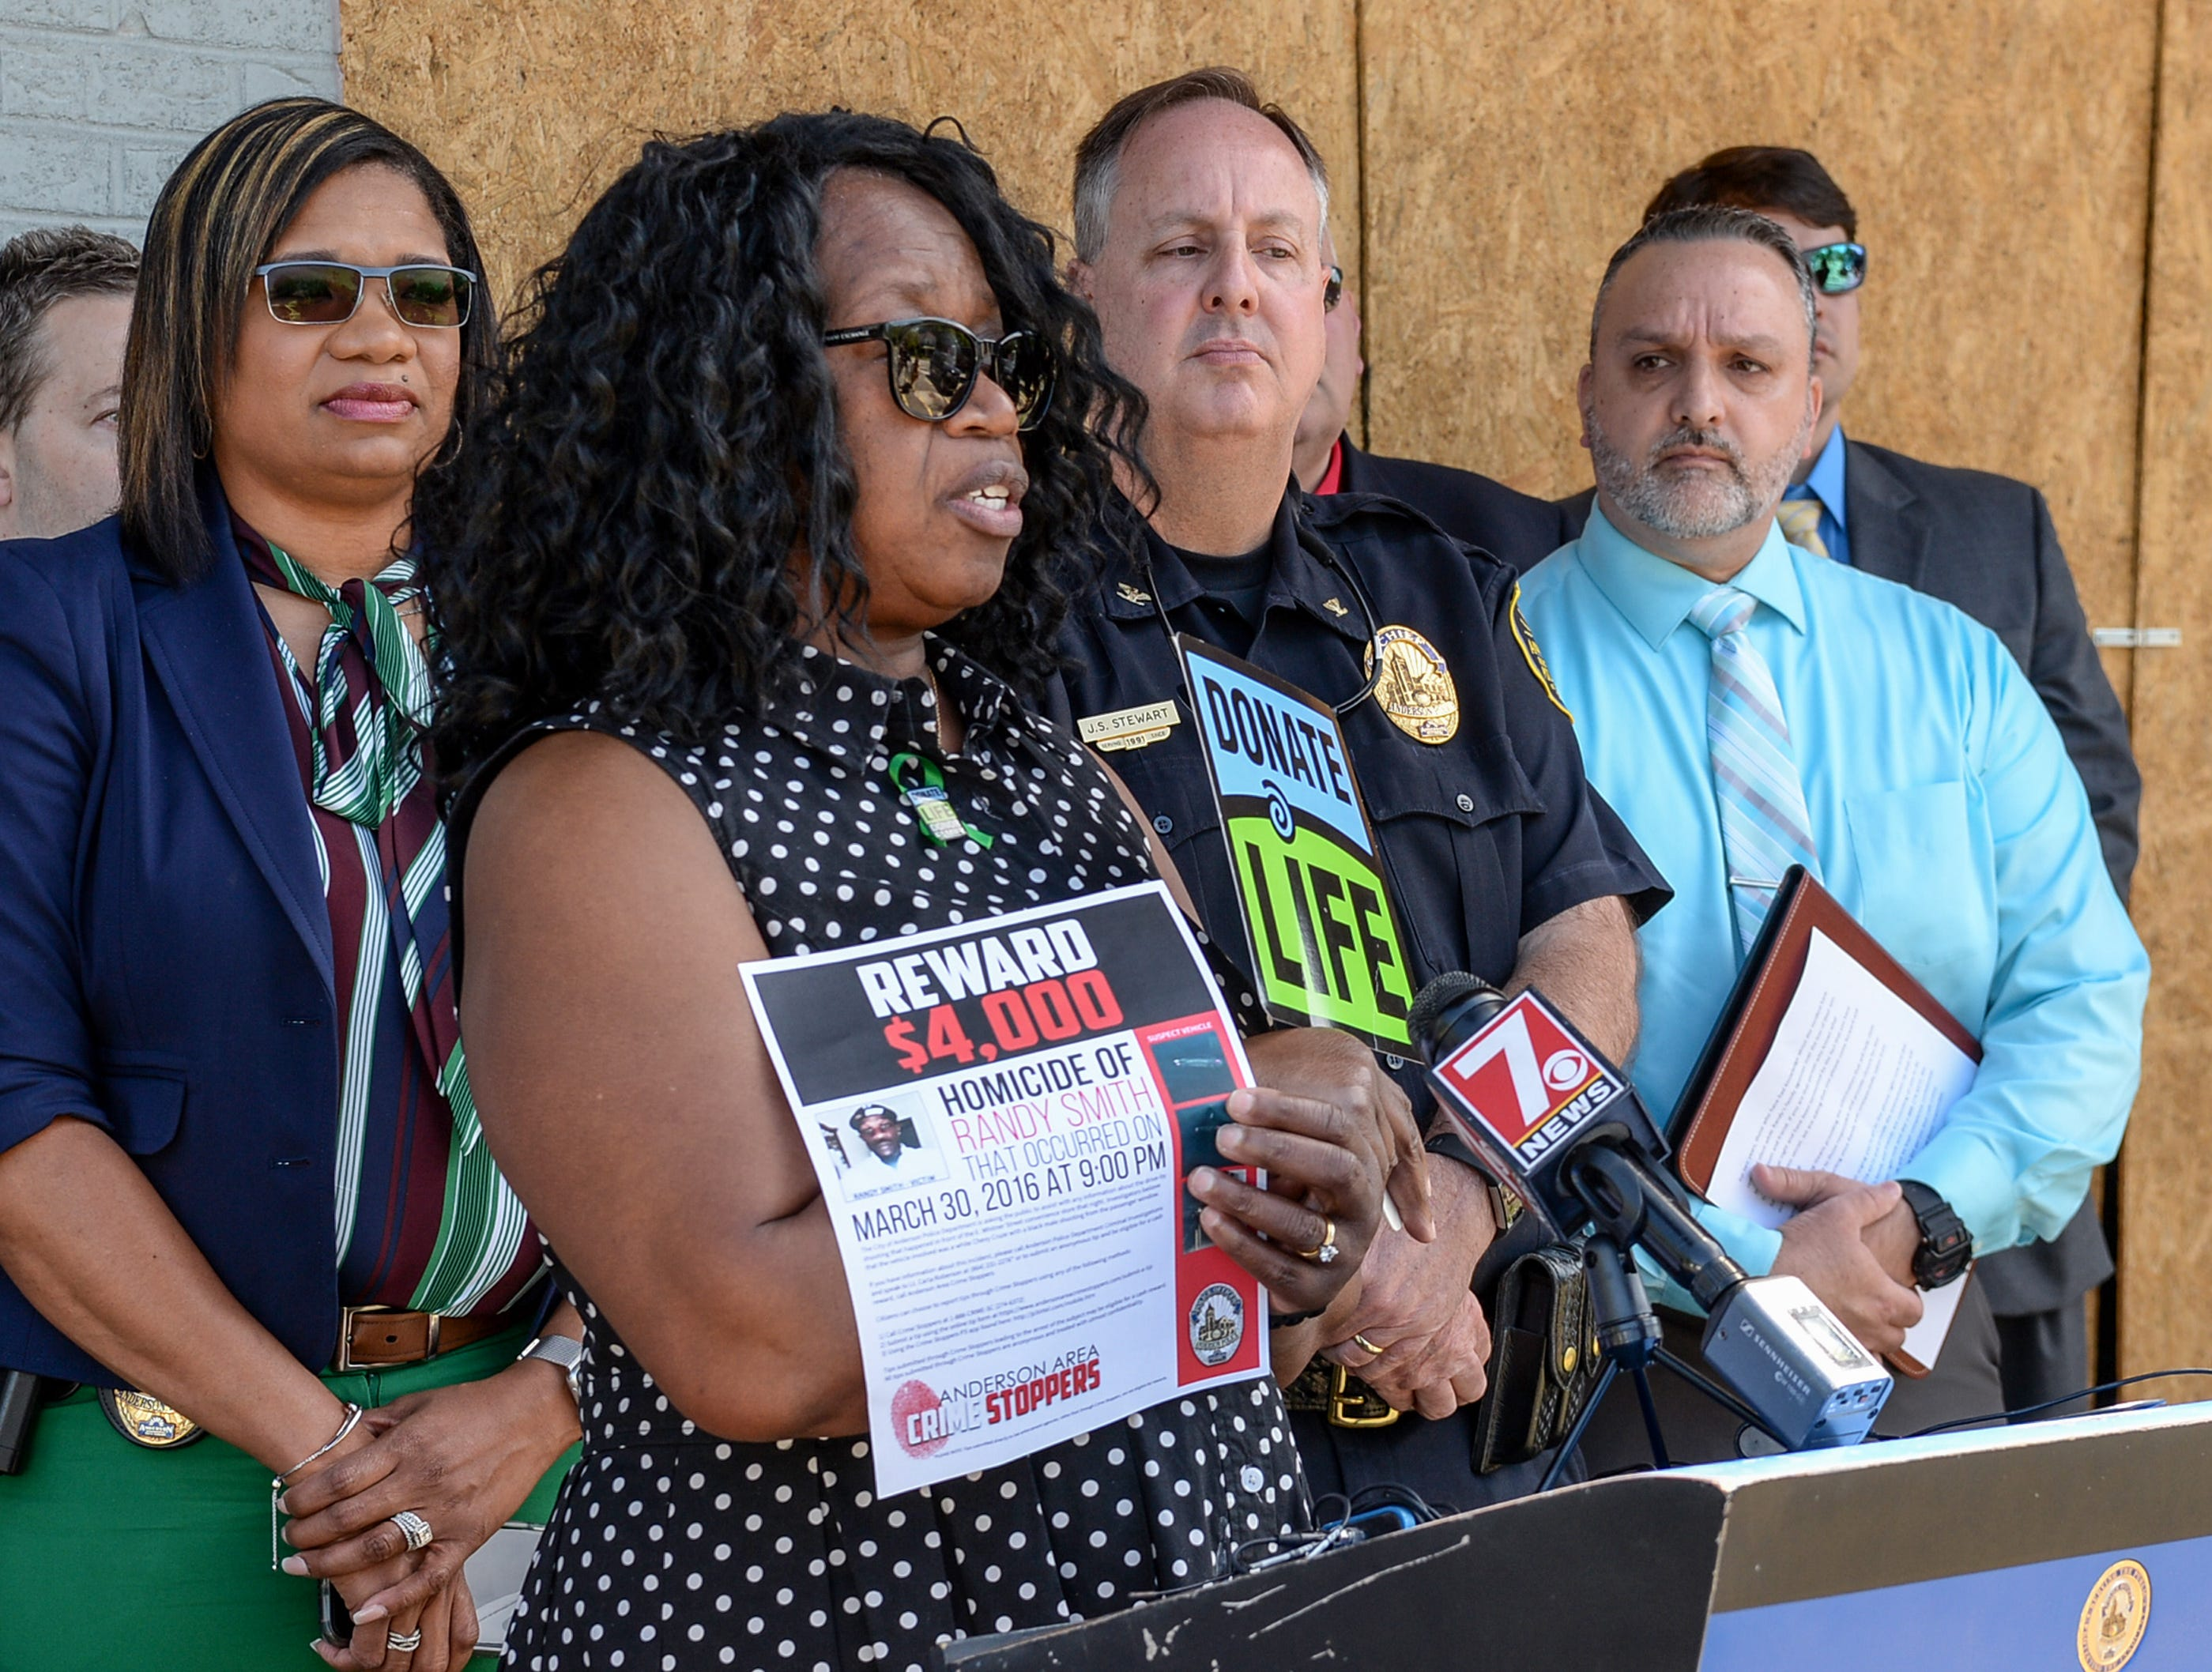 Anderson police Lt. Carla Roberson, left, listens to Gloria Smith speak at a press conference concerning the cold case homicide of Randy Smith on East Whitner Street in Anderson Tuesday. Anderson Area Crime Stoppers held the press conference at the site where her son Randy Smith died, asking for the public to come forward with any tips.